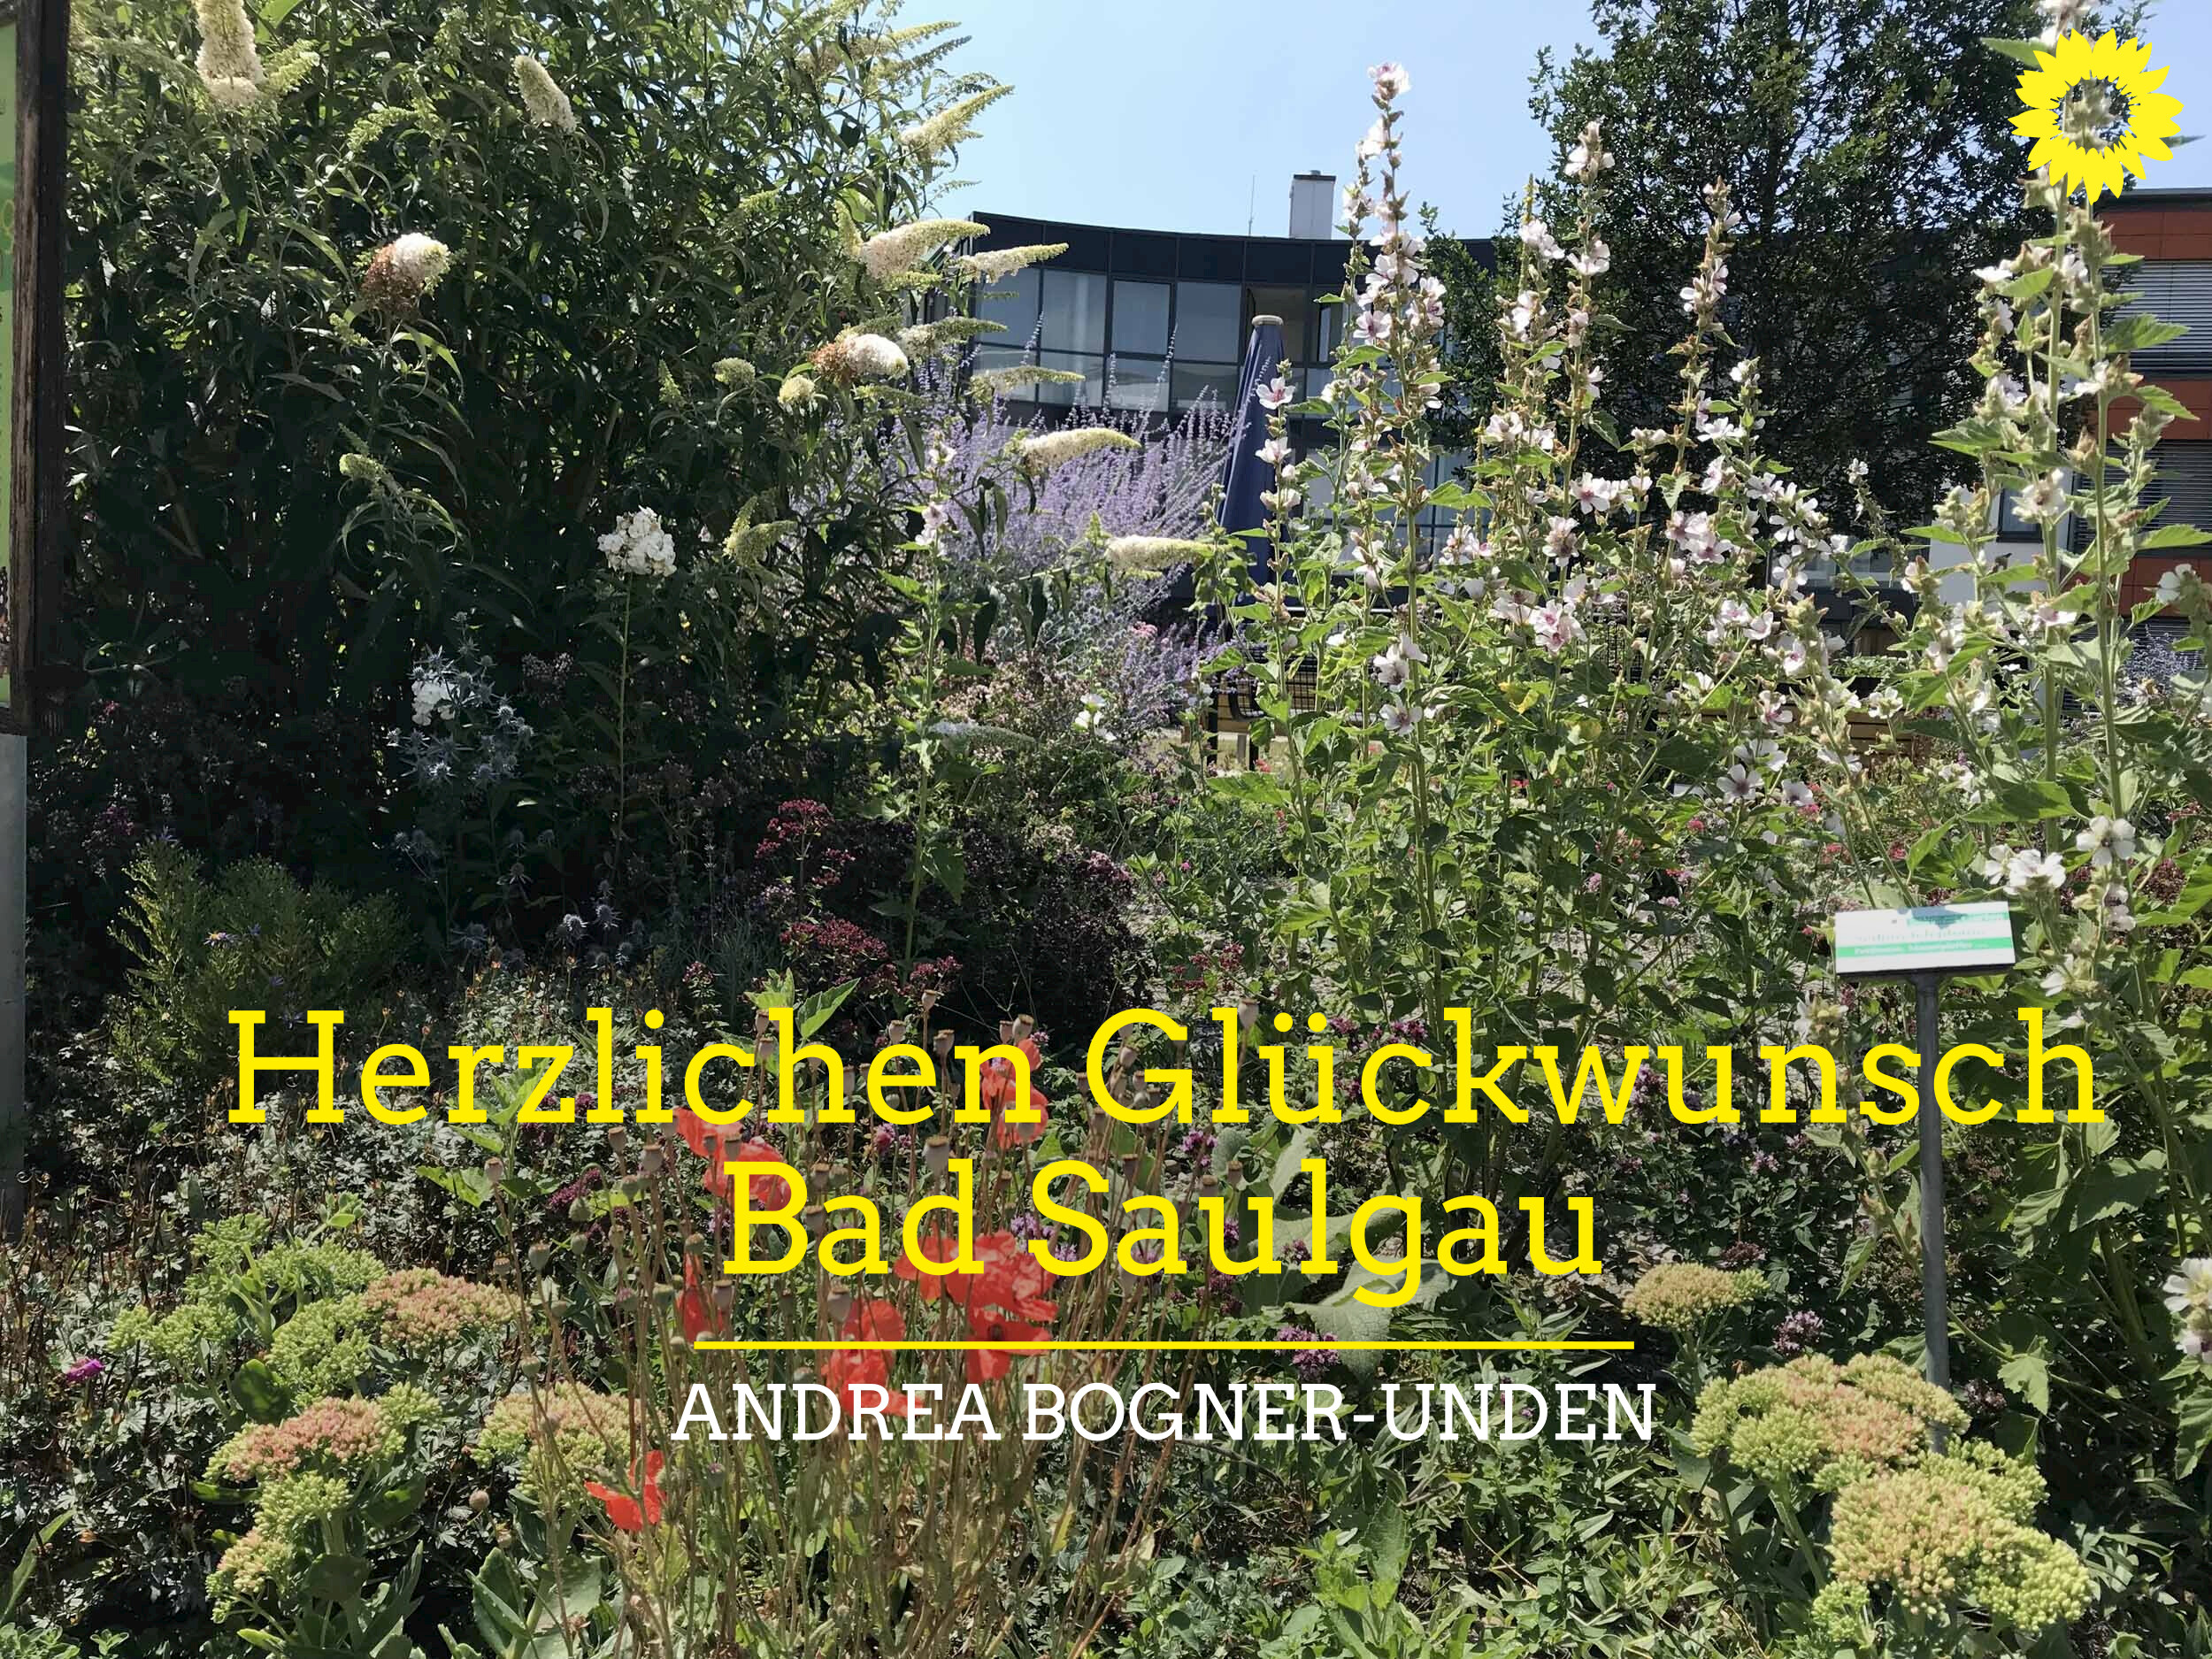 Bad Saulgau mit zweitem Platz bei Start-up BW Local